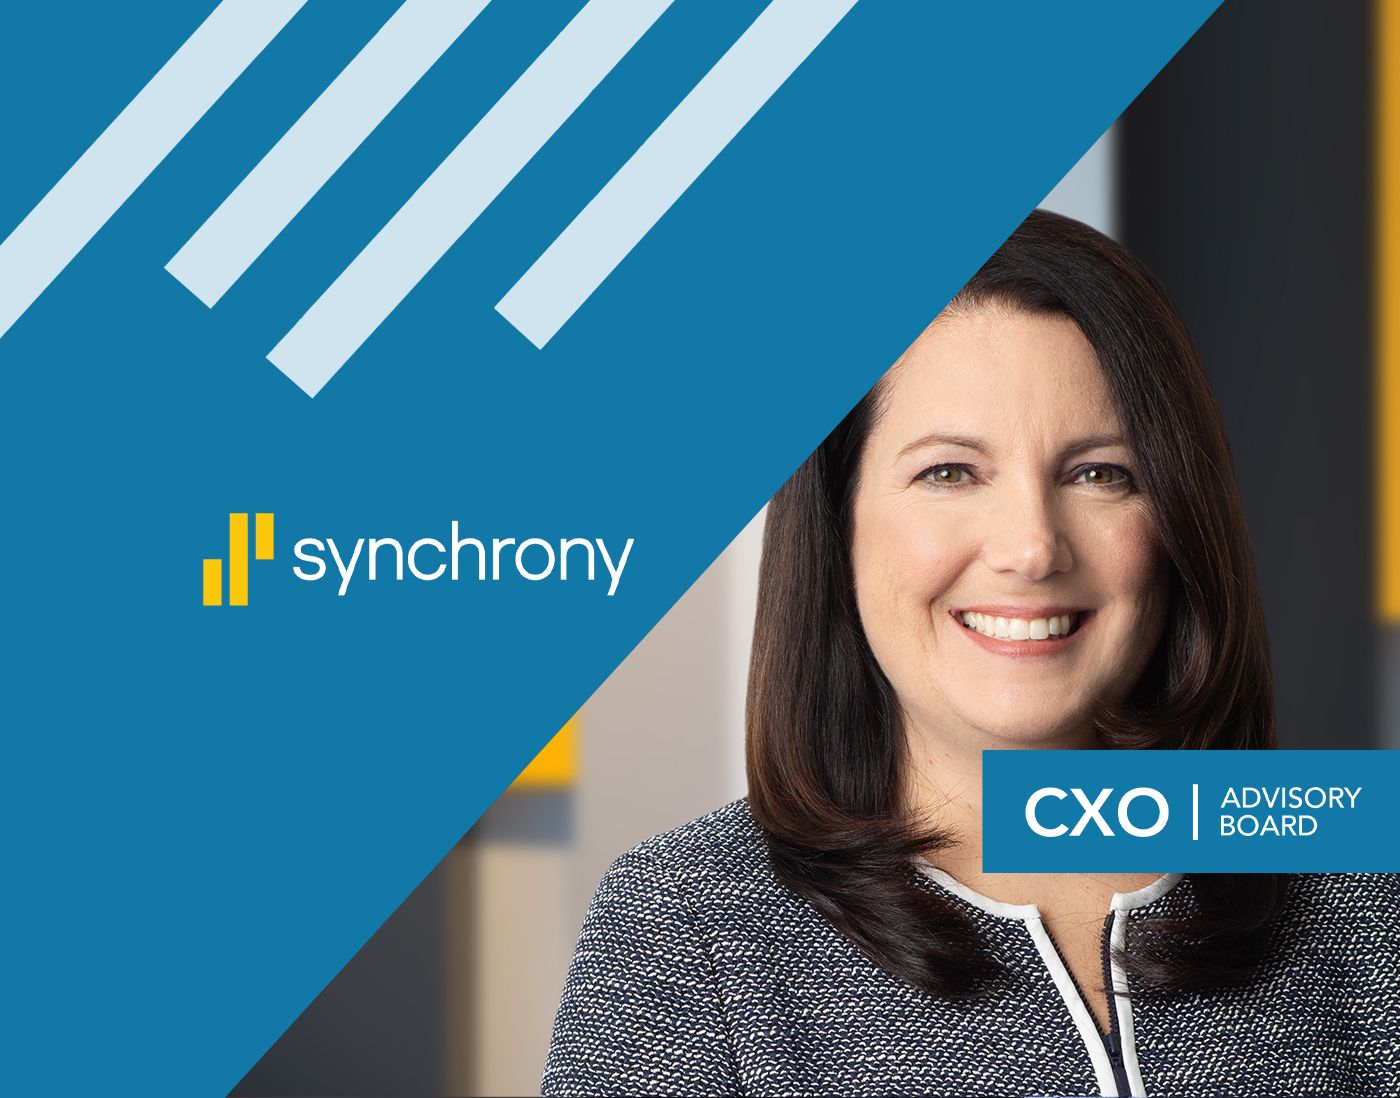 Carol Juel - Chief Information Officer, Synchrony